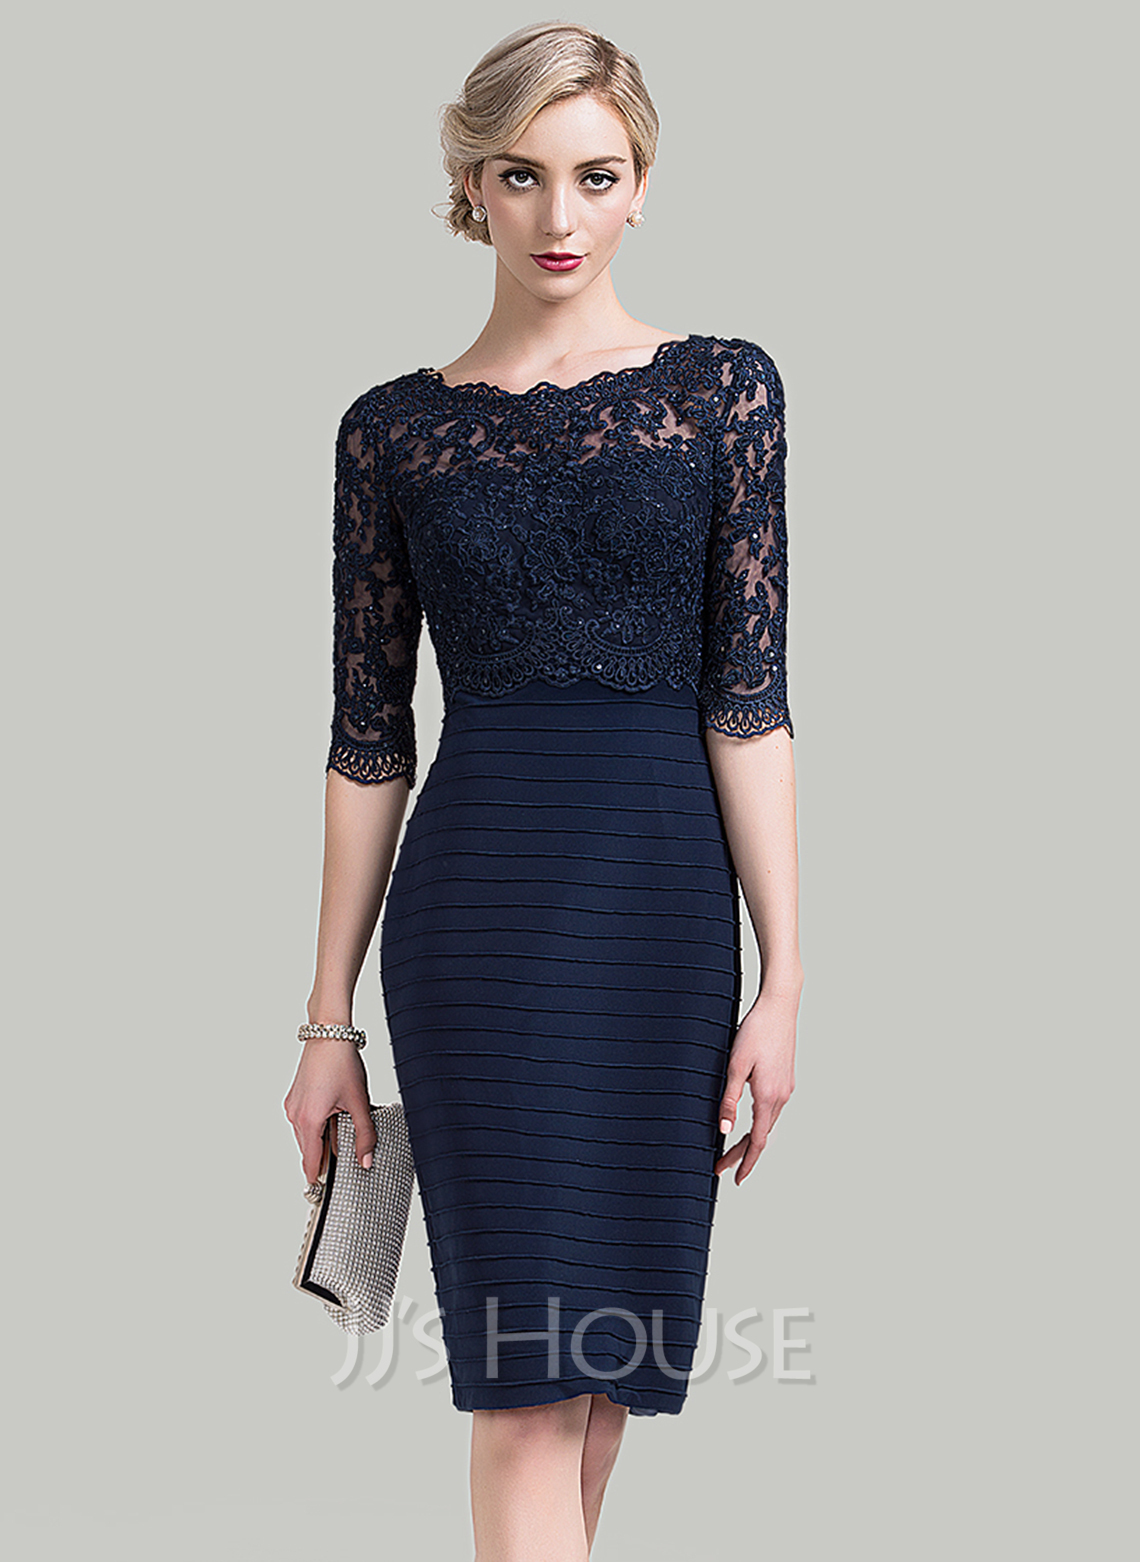 b7dae3773f5 Sheath Column Scoop Neck Knee-Length Lace Mother of the Bride Dress With  Sequins. Loading zoom